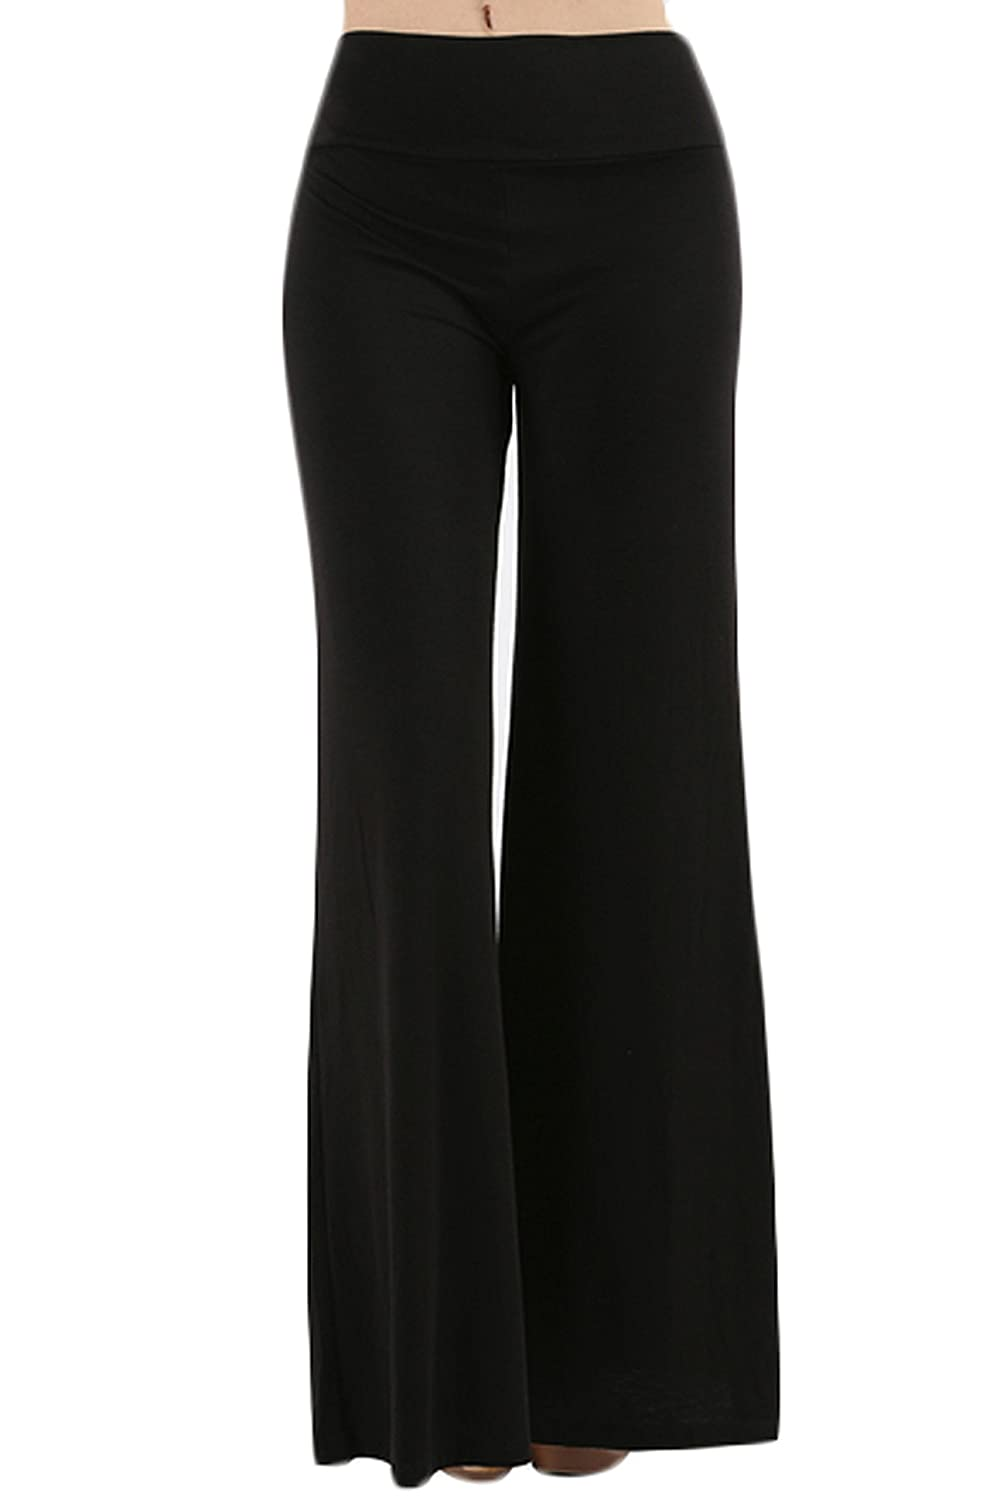 d4f6c17629a82 TOP LEGGING TL Women's Versatile Comfy Wide Leg Long Maternity Palazzo  Gaucho Lounge Pants at Amazon Women's Clothing store: